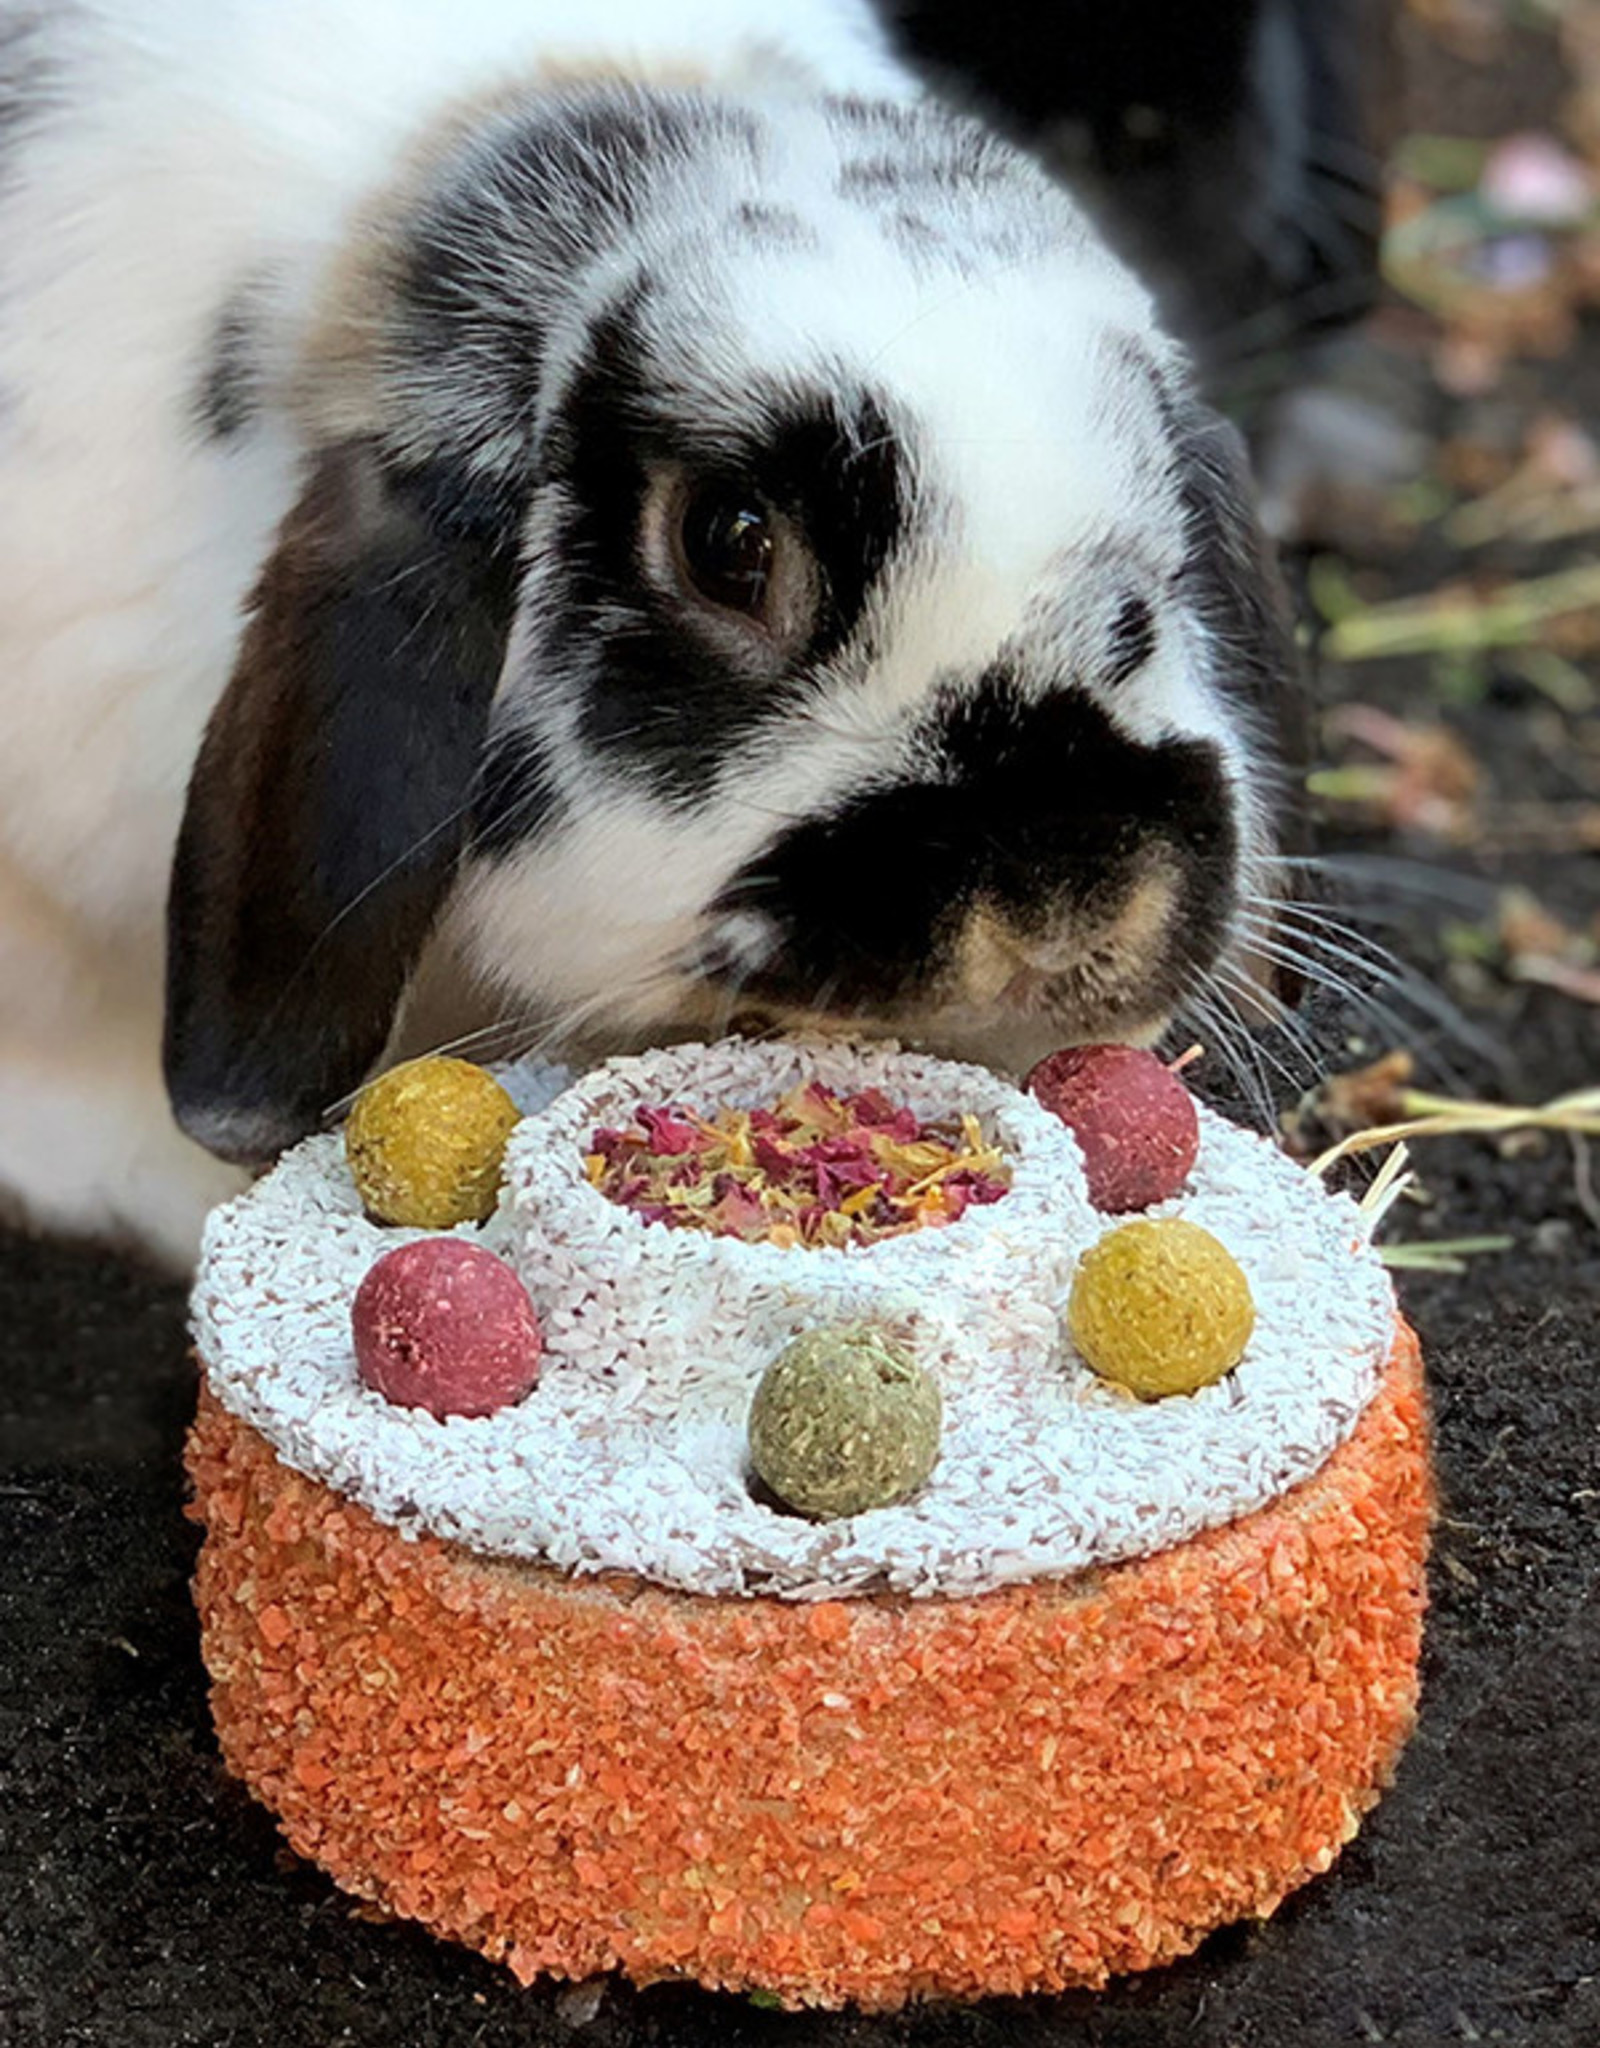 Rosewood Natural's Celebration Cake for Small Animals